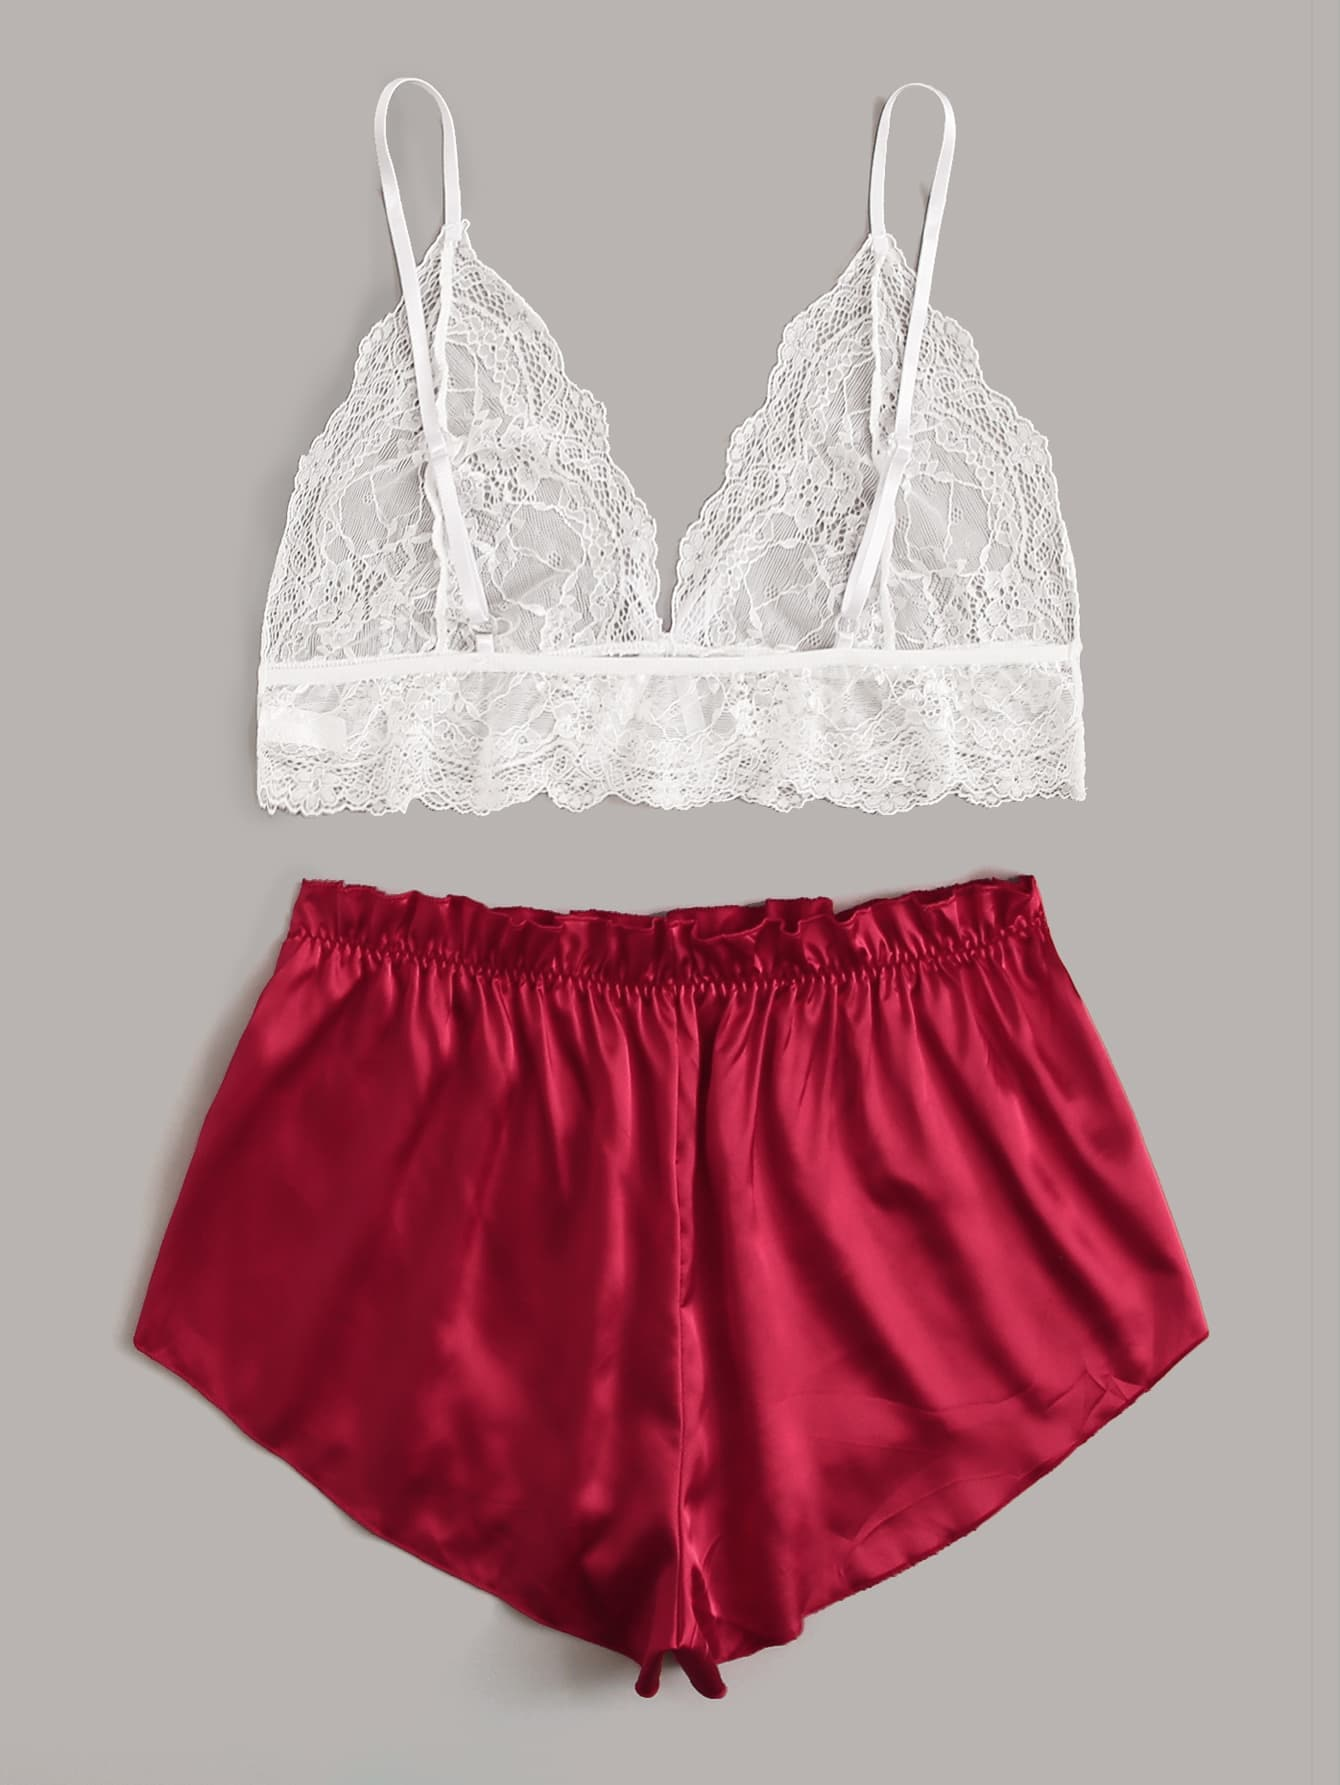 Plus Floral Lace Cami Top With Satin Shorts - FLJ CORPORATIONS